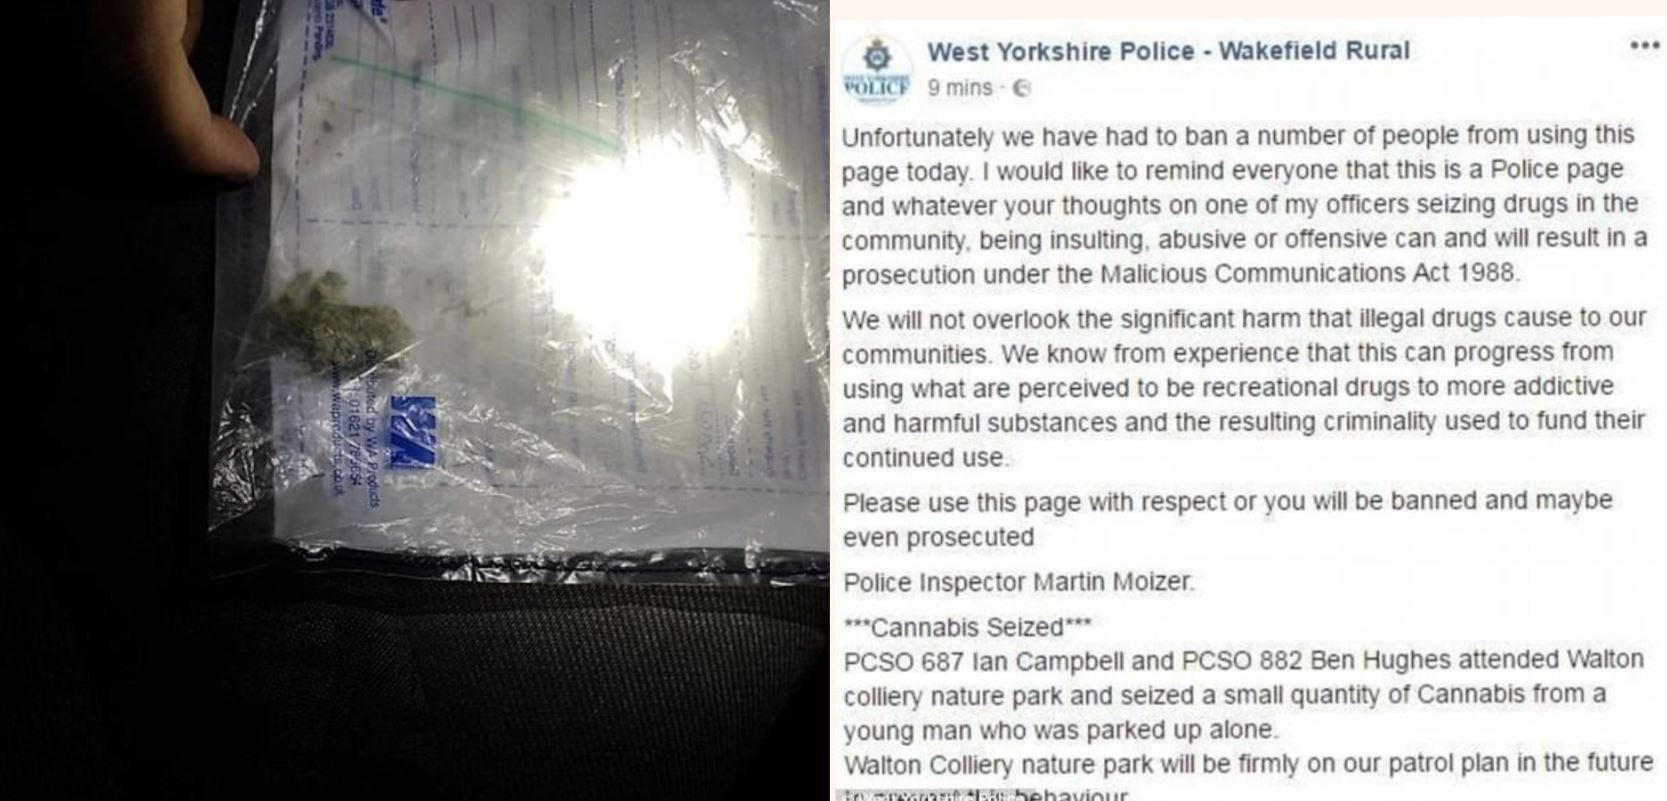 The Internet roasts police after posting tiny cannabis haul on social media